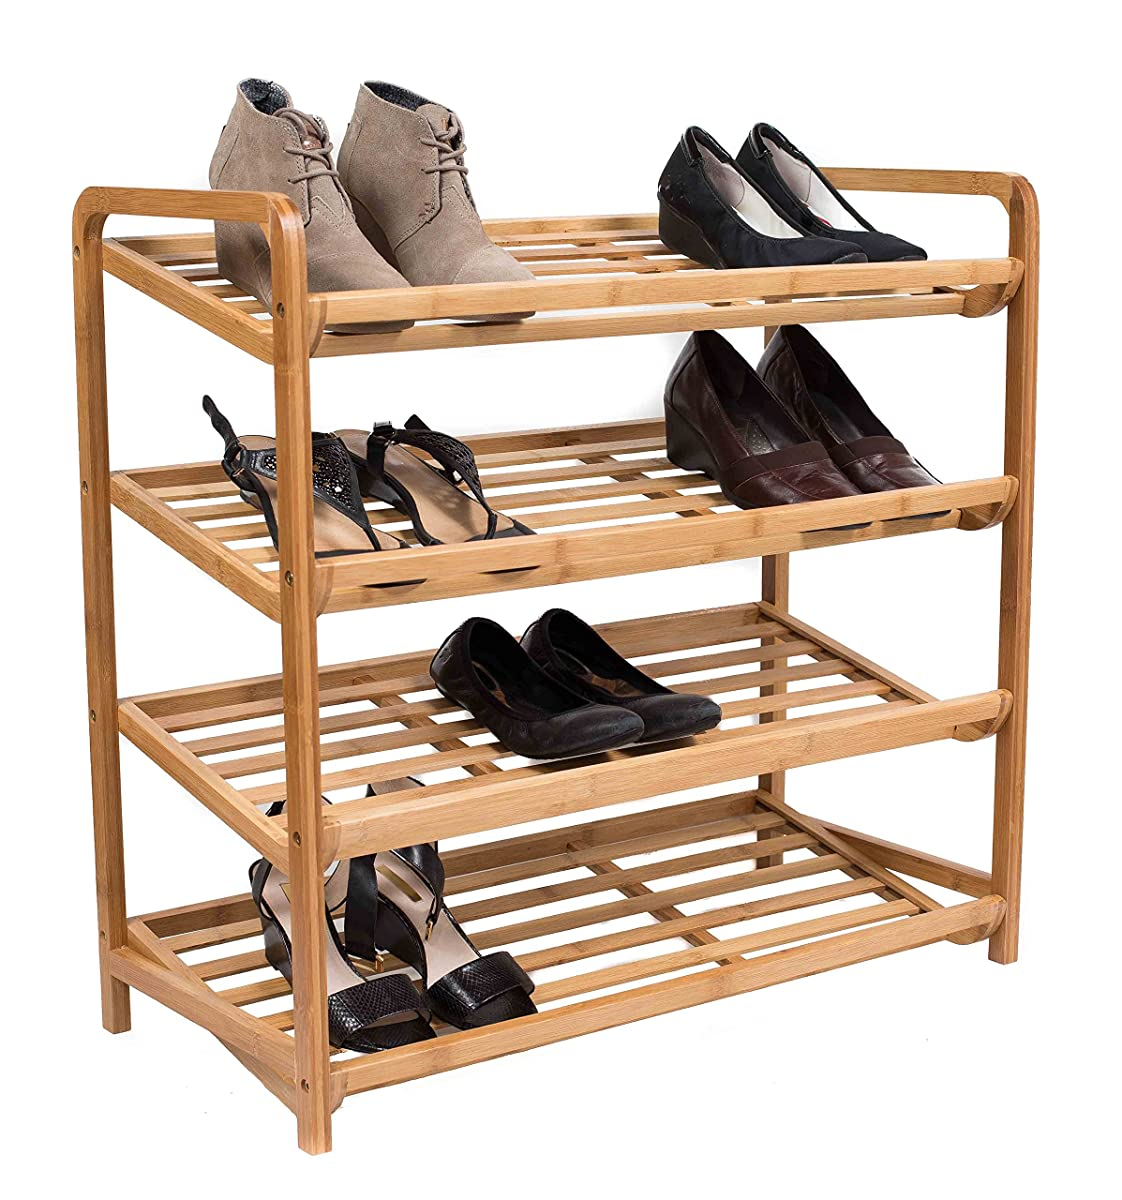 BirdRock Home 4-Tier Bamboo Shoe Rack | Environmentally Friendly | Fits 9-12 Shoes